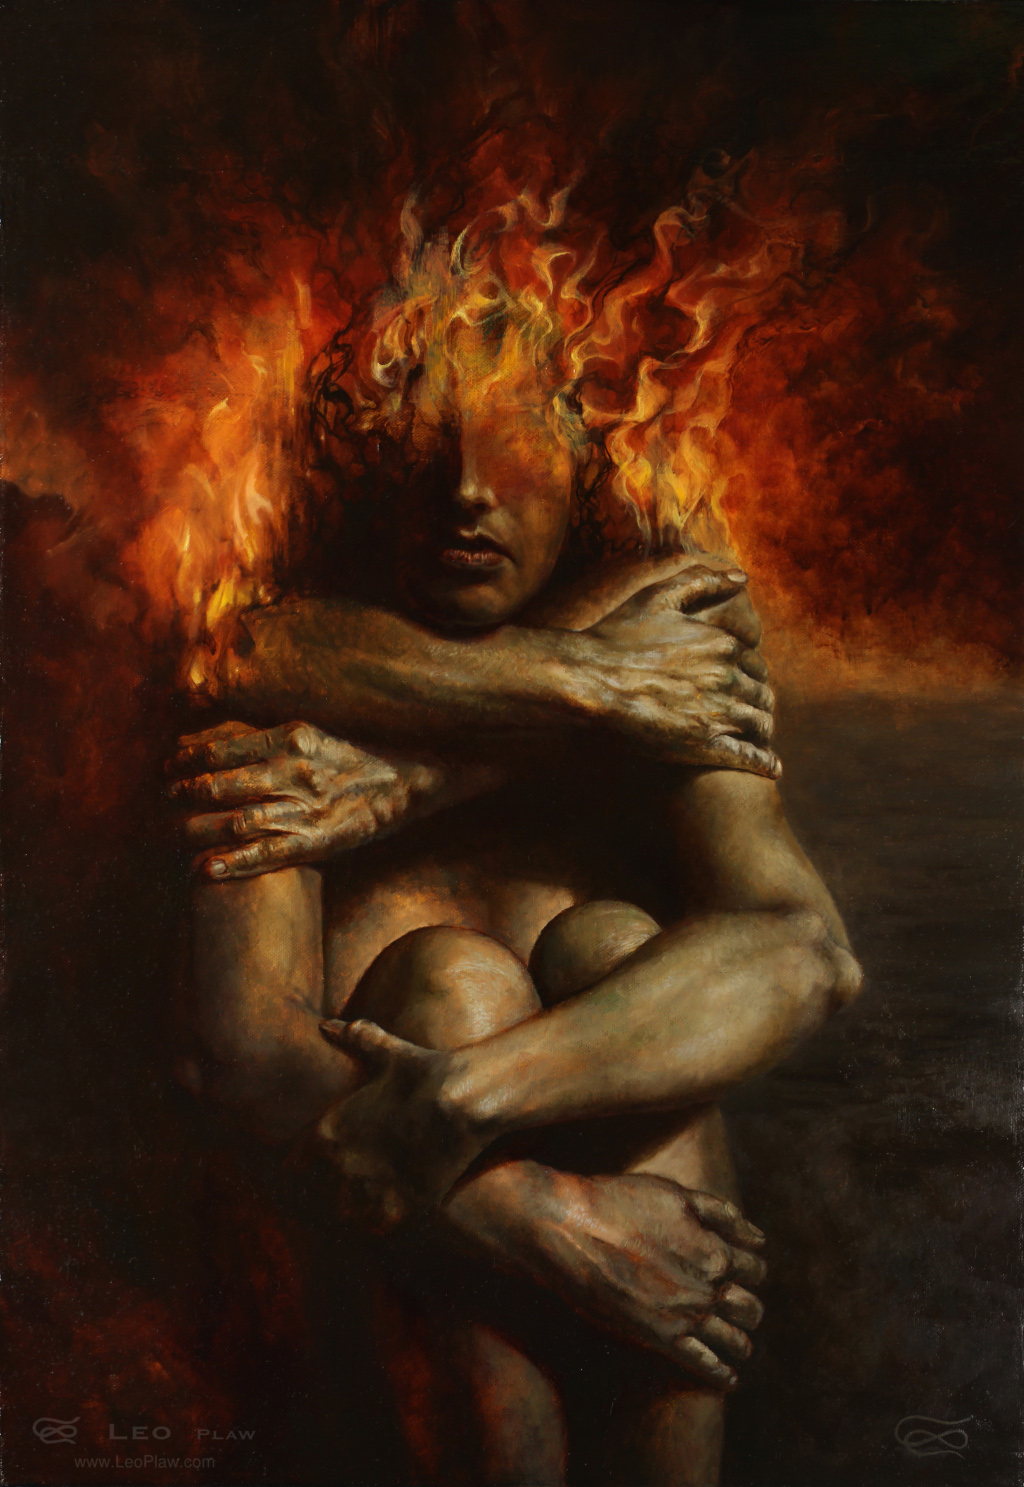 """Embrace"", Leo Plaw, 50 x 70cm, oil on canvas"